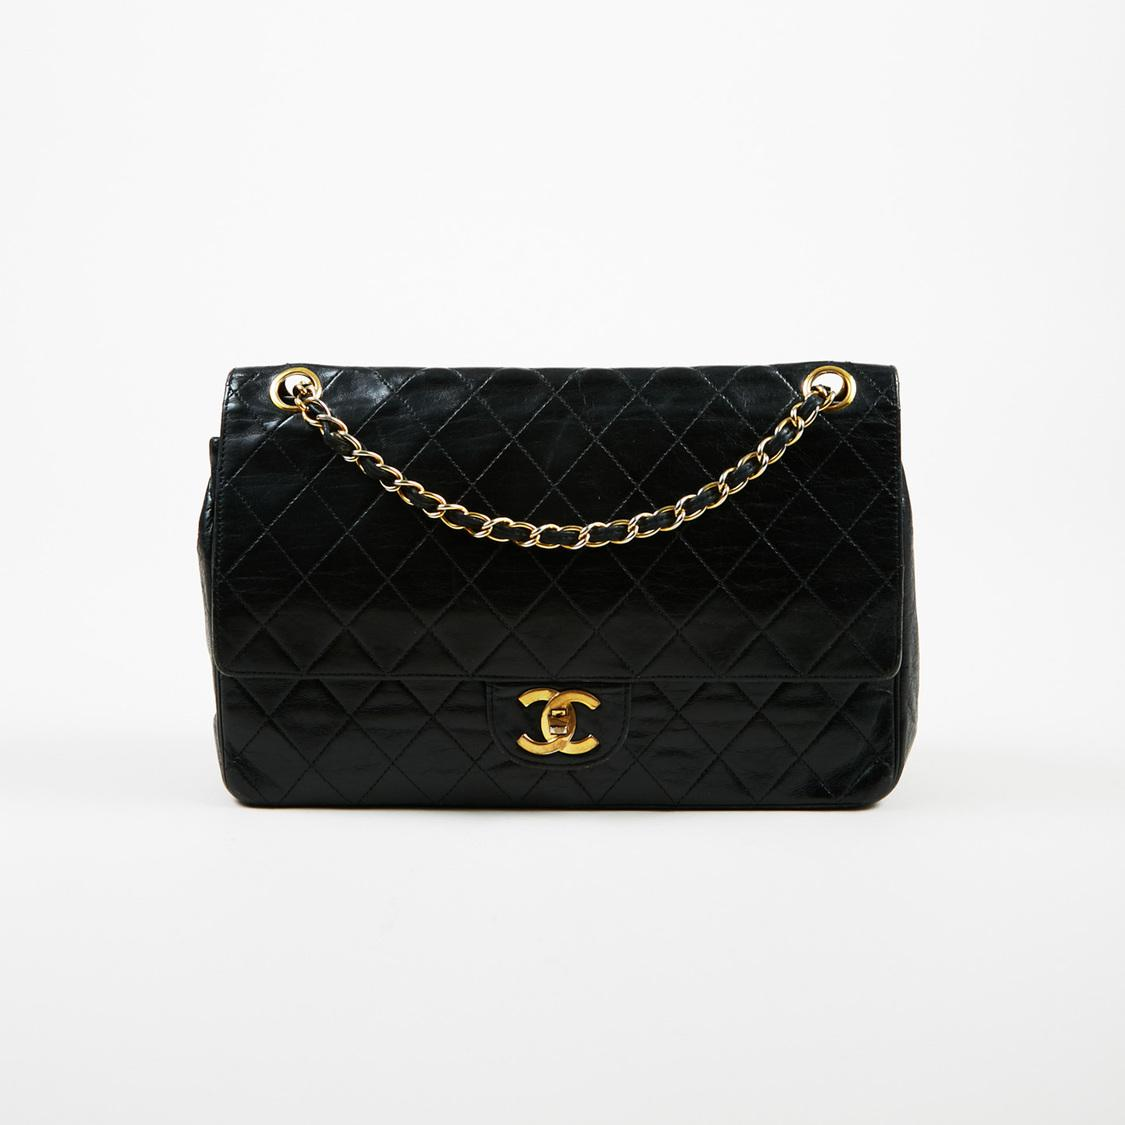 138c66643f2 Chanel Vintage Classic Double Flap Medium Quilted Lambskin Leather ...